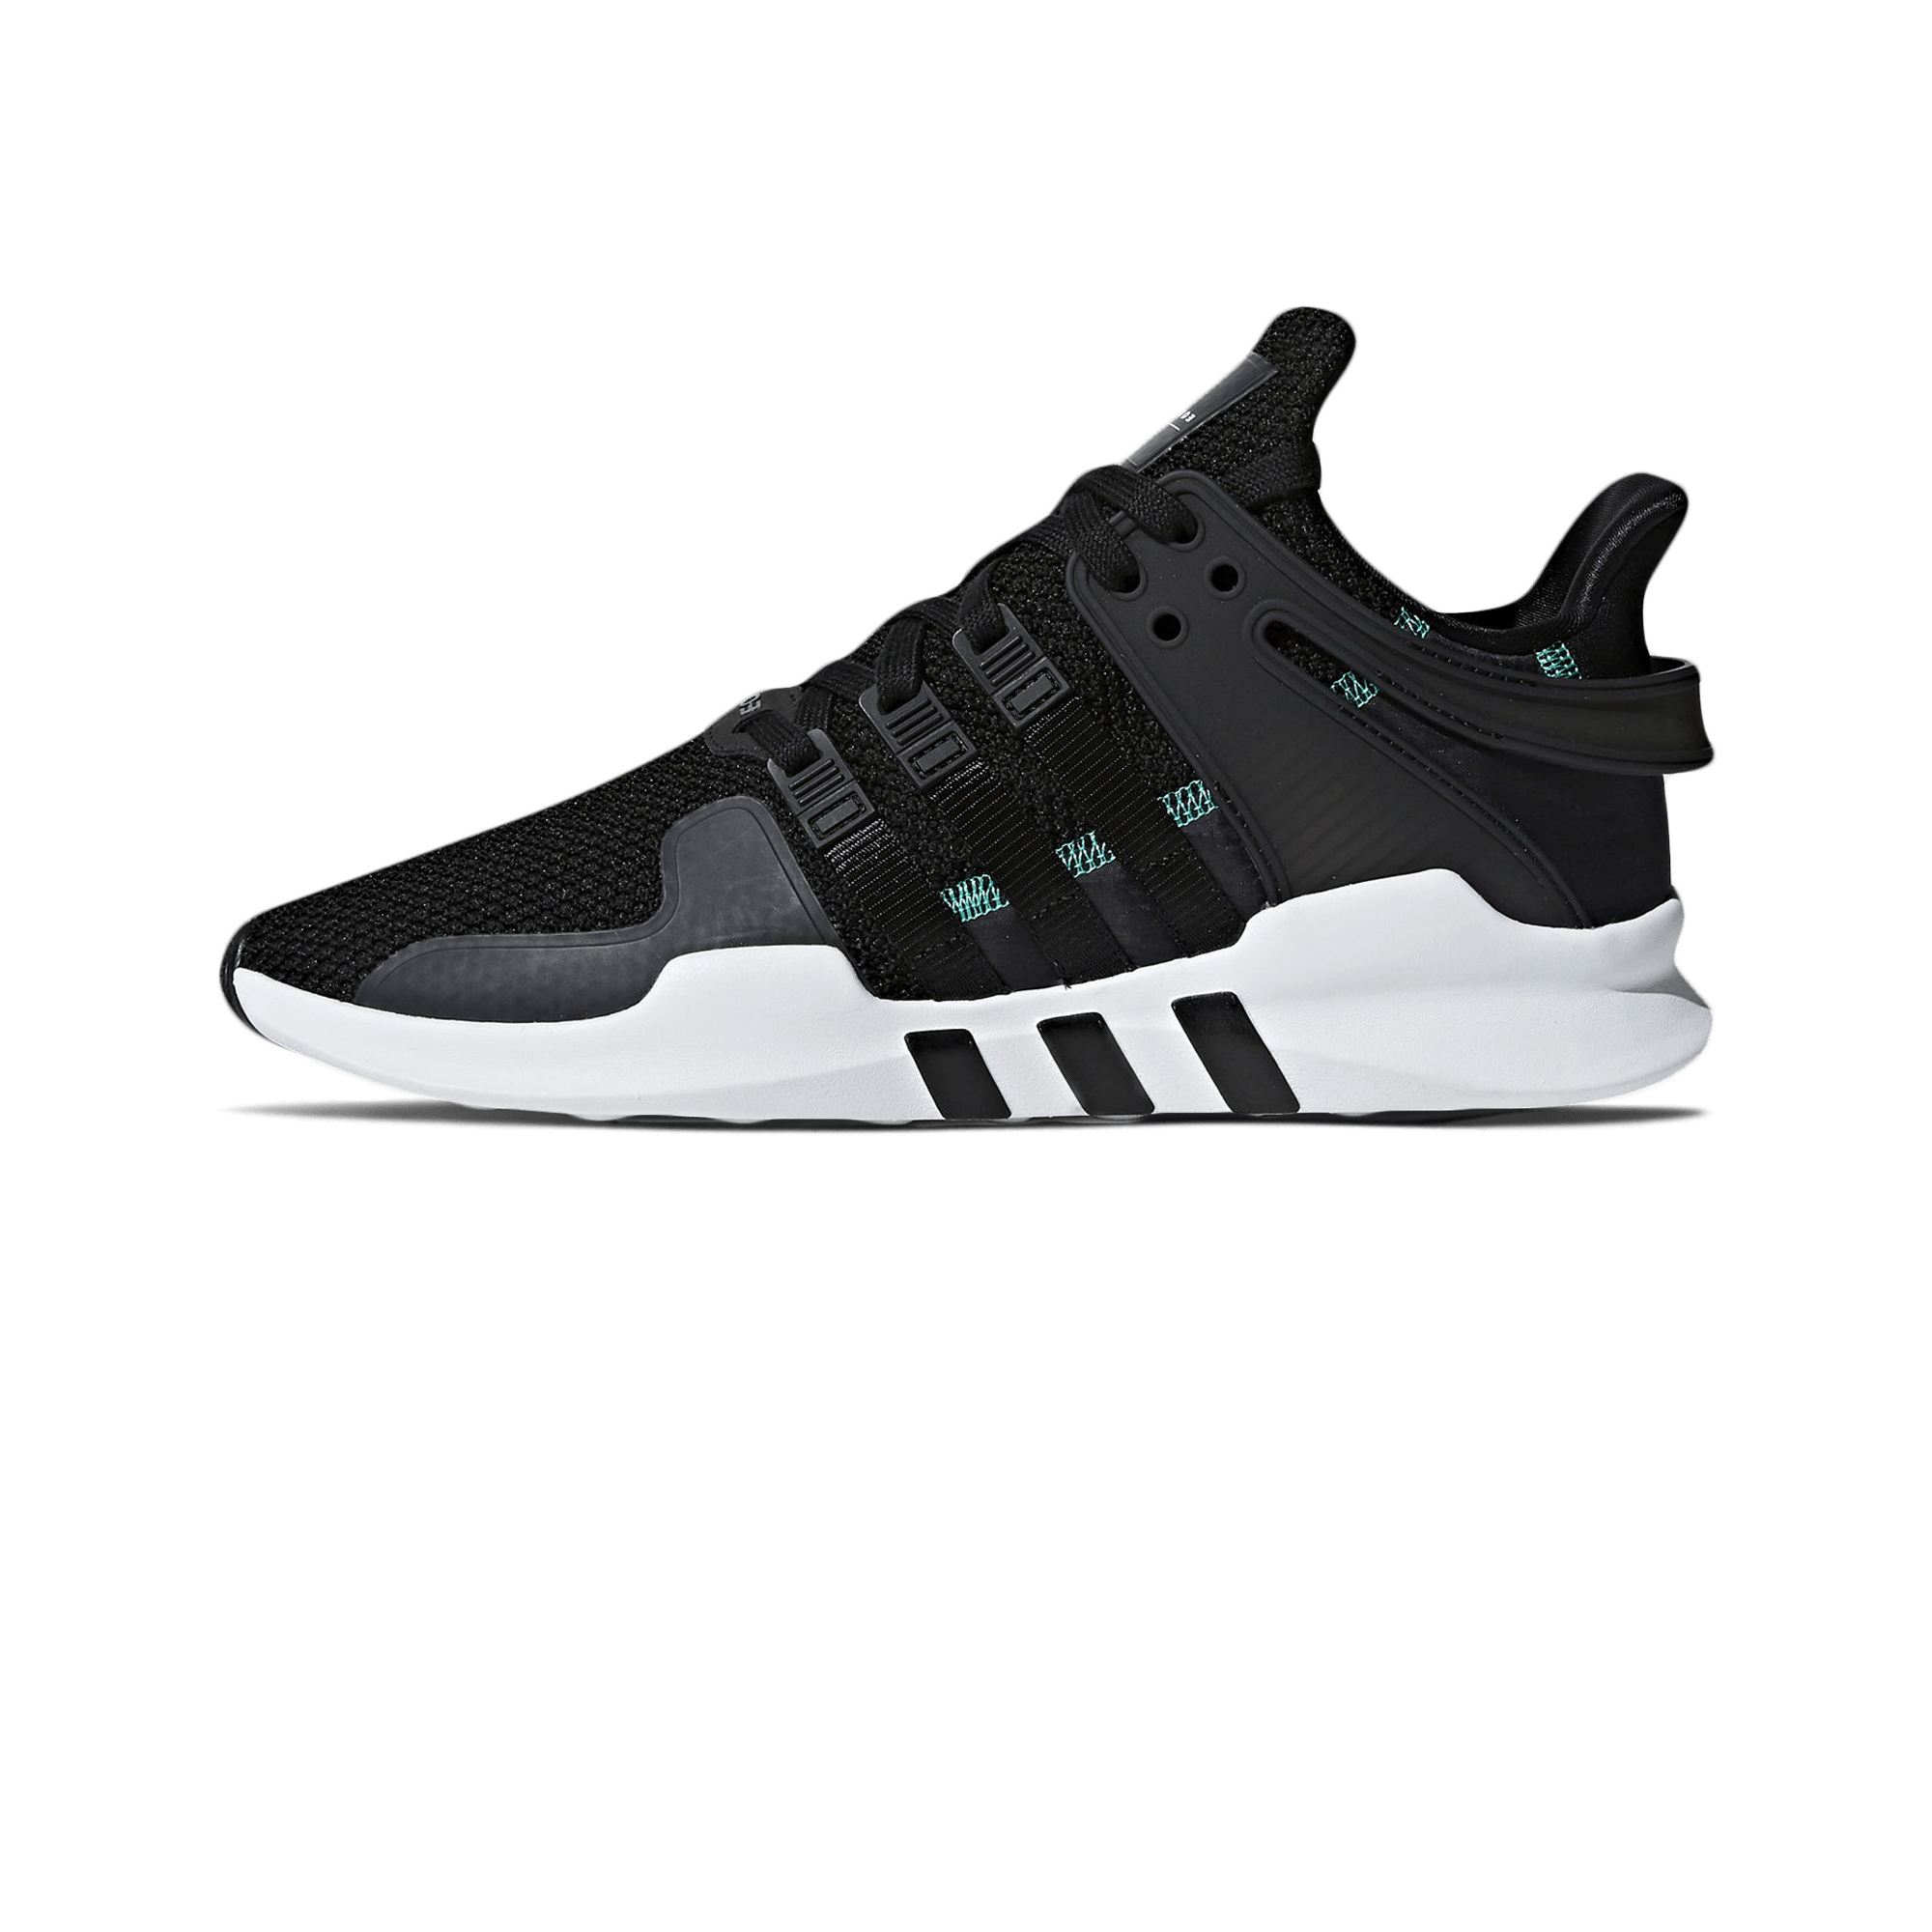 size 40 f7766 189b4 adidas EQT Support ADV black/white - Men | Holypopstore.com